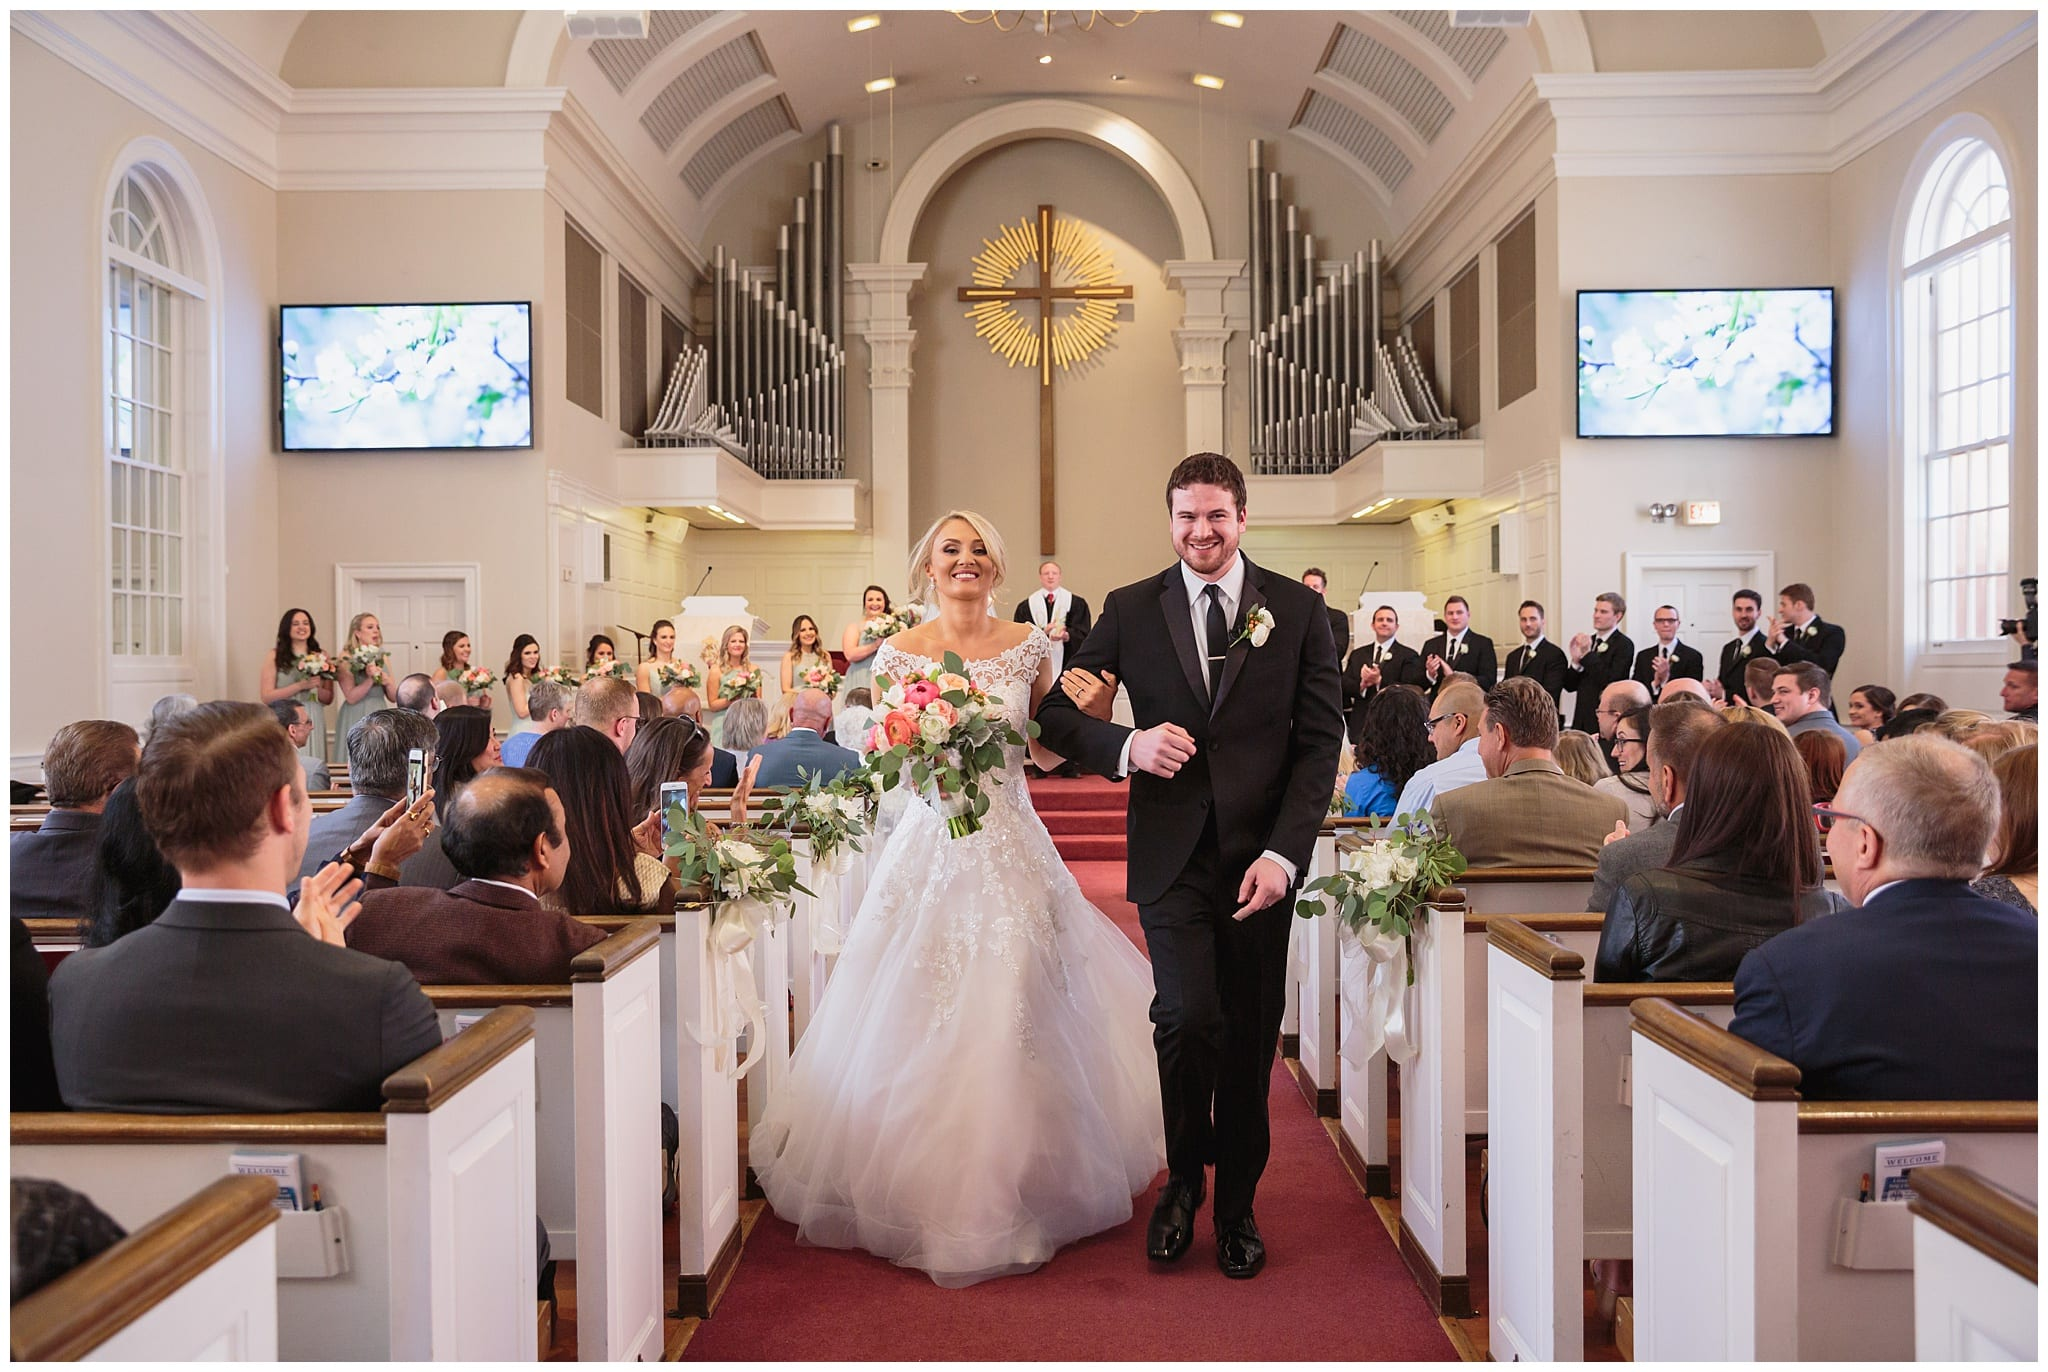 First Presbyterian Church of Arlington Heights Wedding - Wes Craft Photography